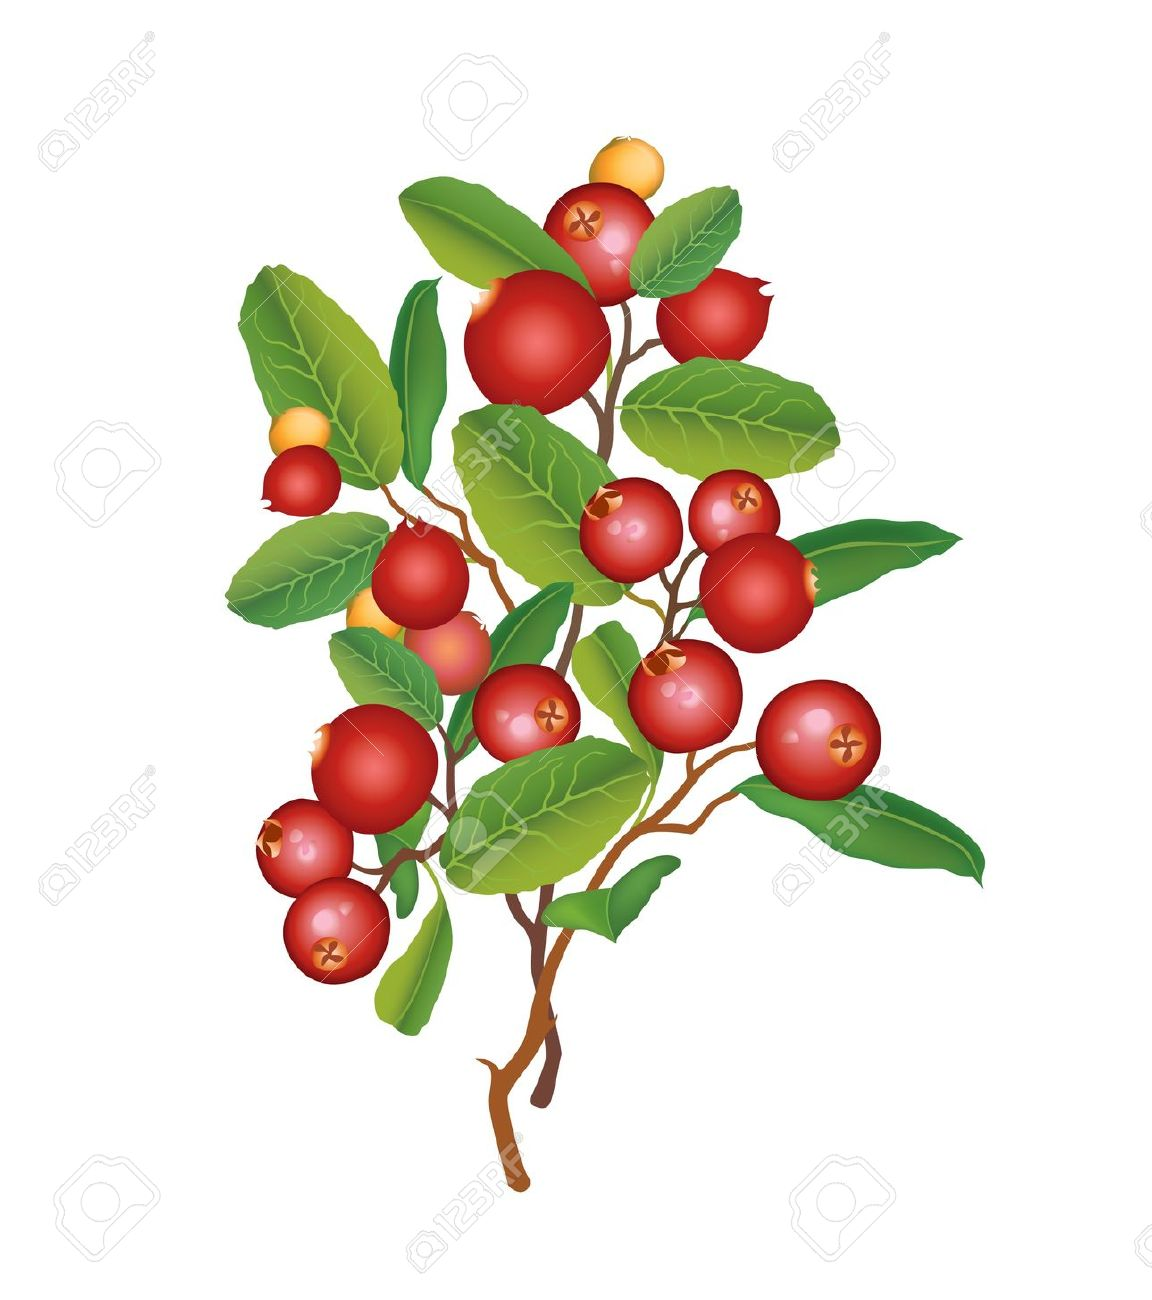 Berries on a bush clipart banner transparent download Berry bush clipart 7 » Clipart Station banner transparent download